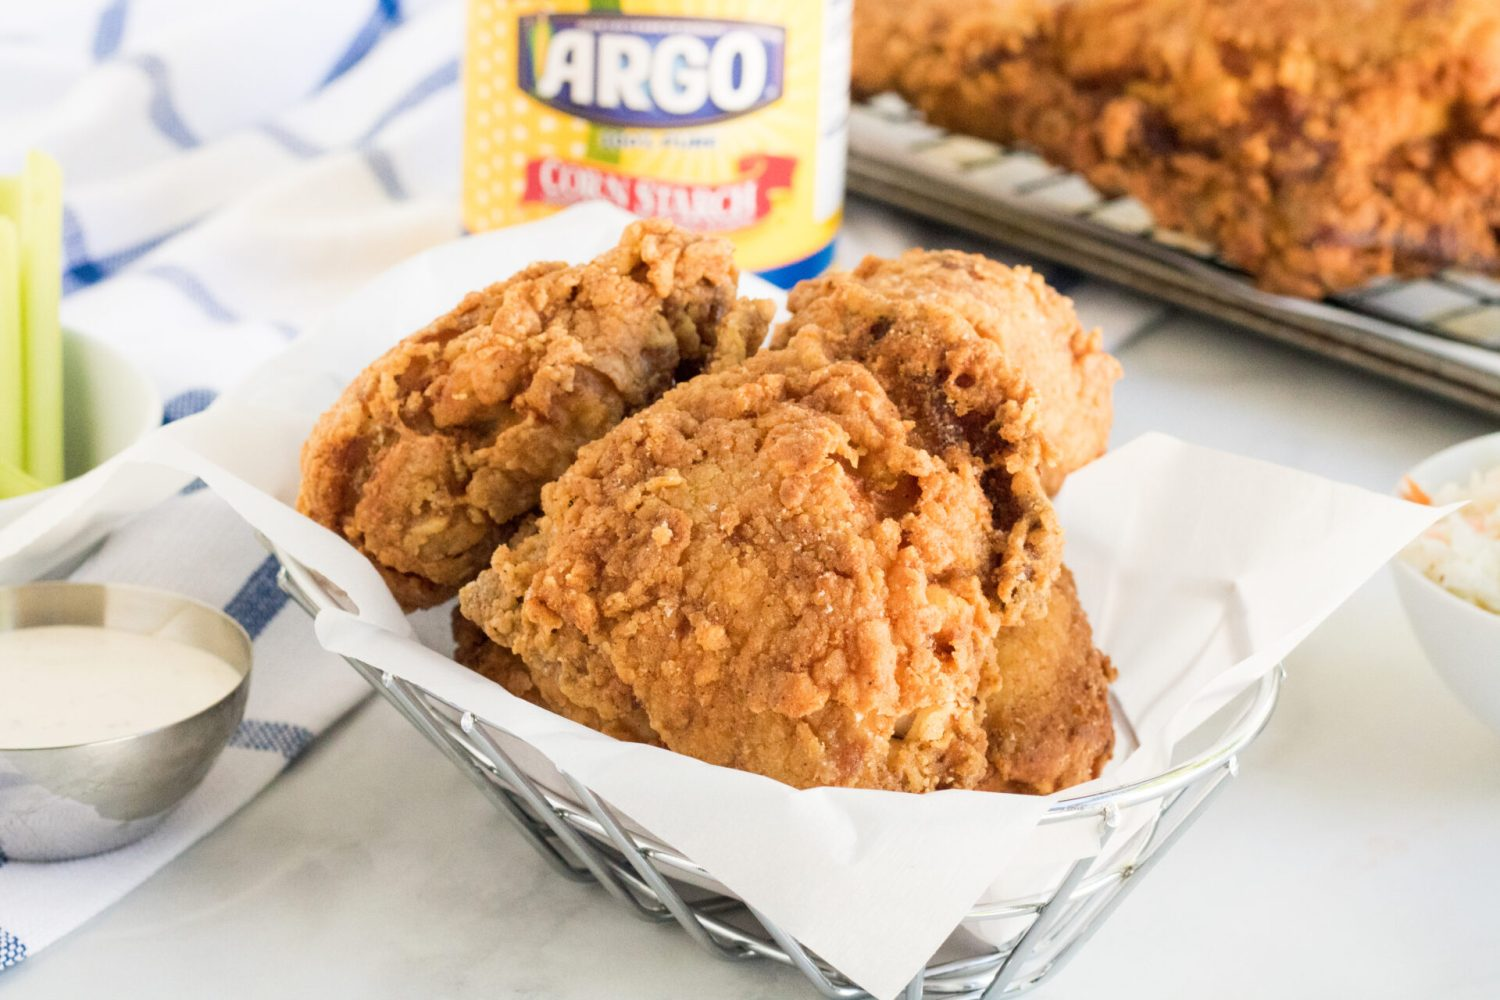 Looking for the crispiest southern fried chicken? Look no further because we're sharing our secret ingredient to make the crispiest chicken!